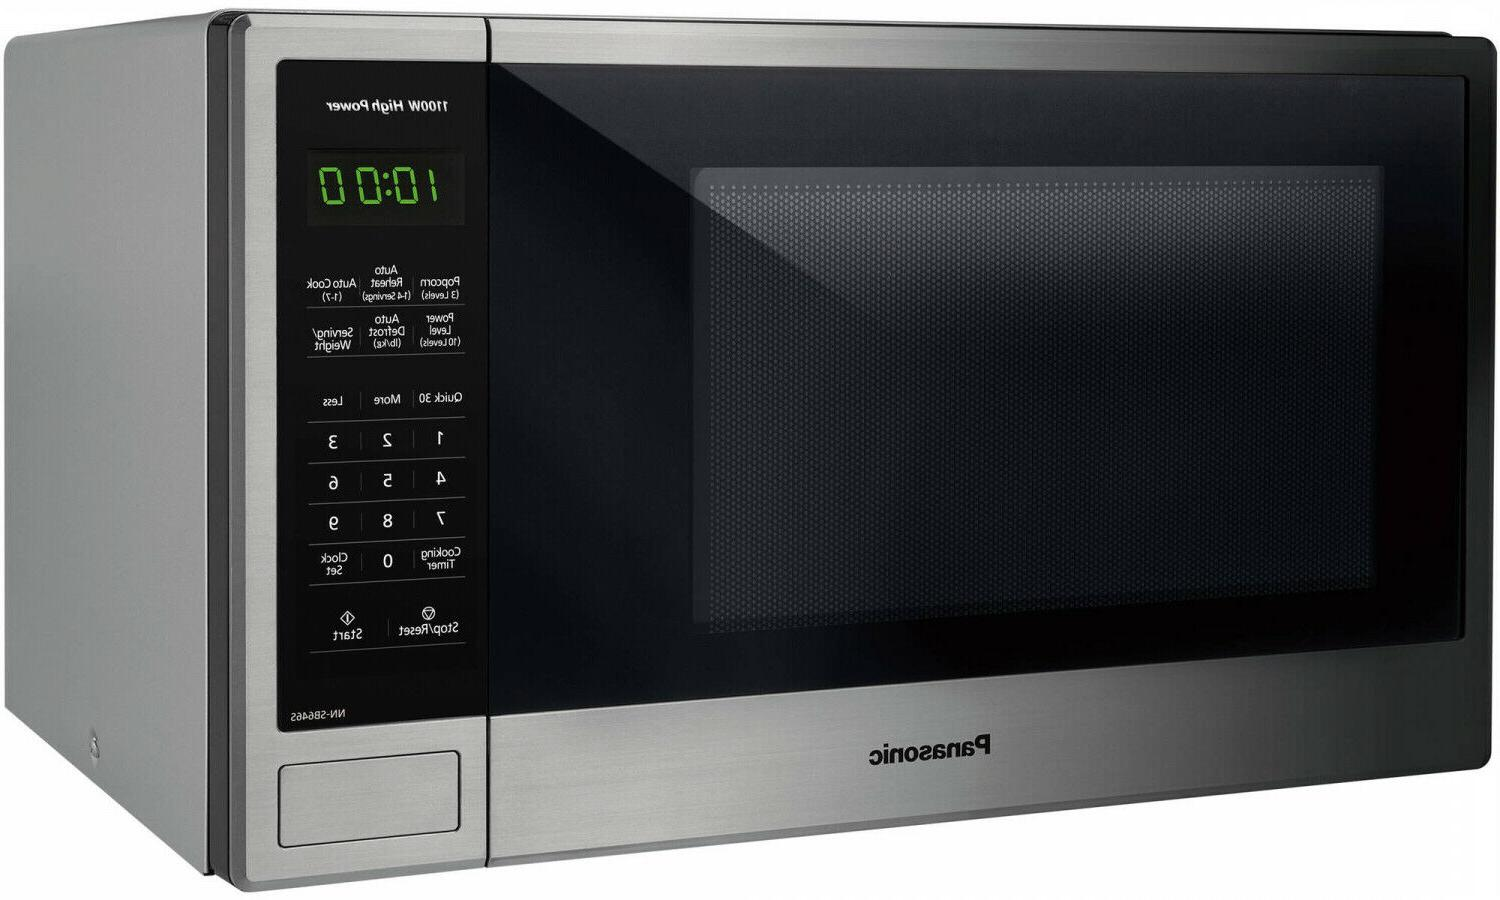 Panasonic 1.3 1100W Countertop Stainless Steel Microwave with